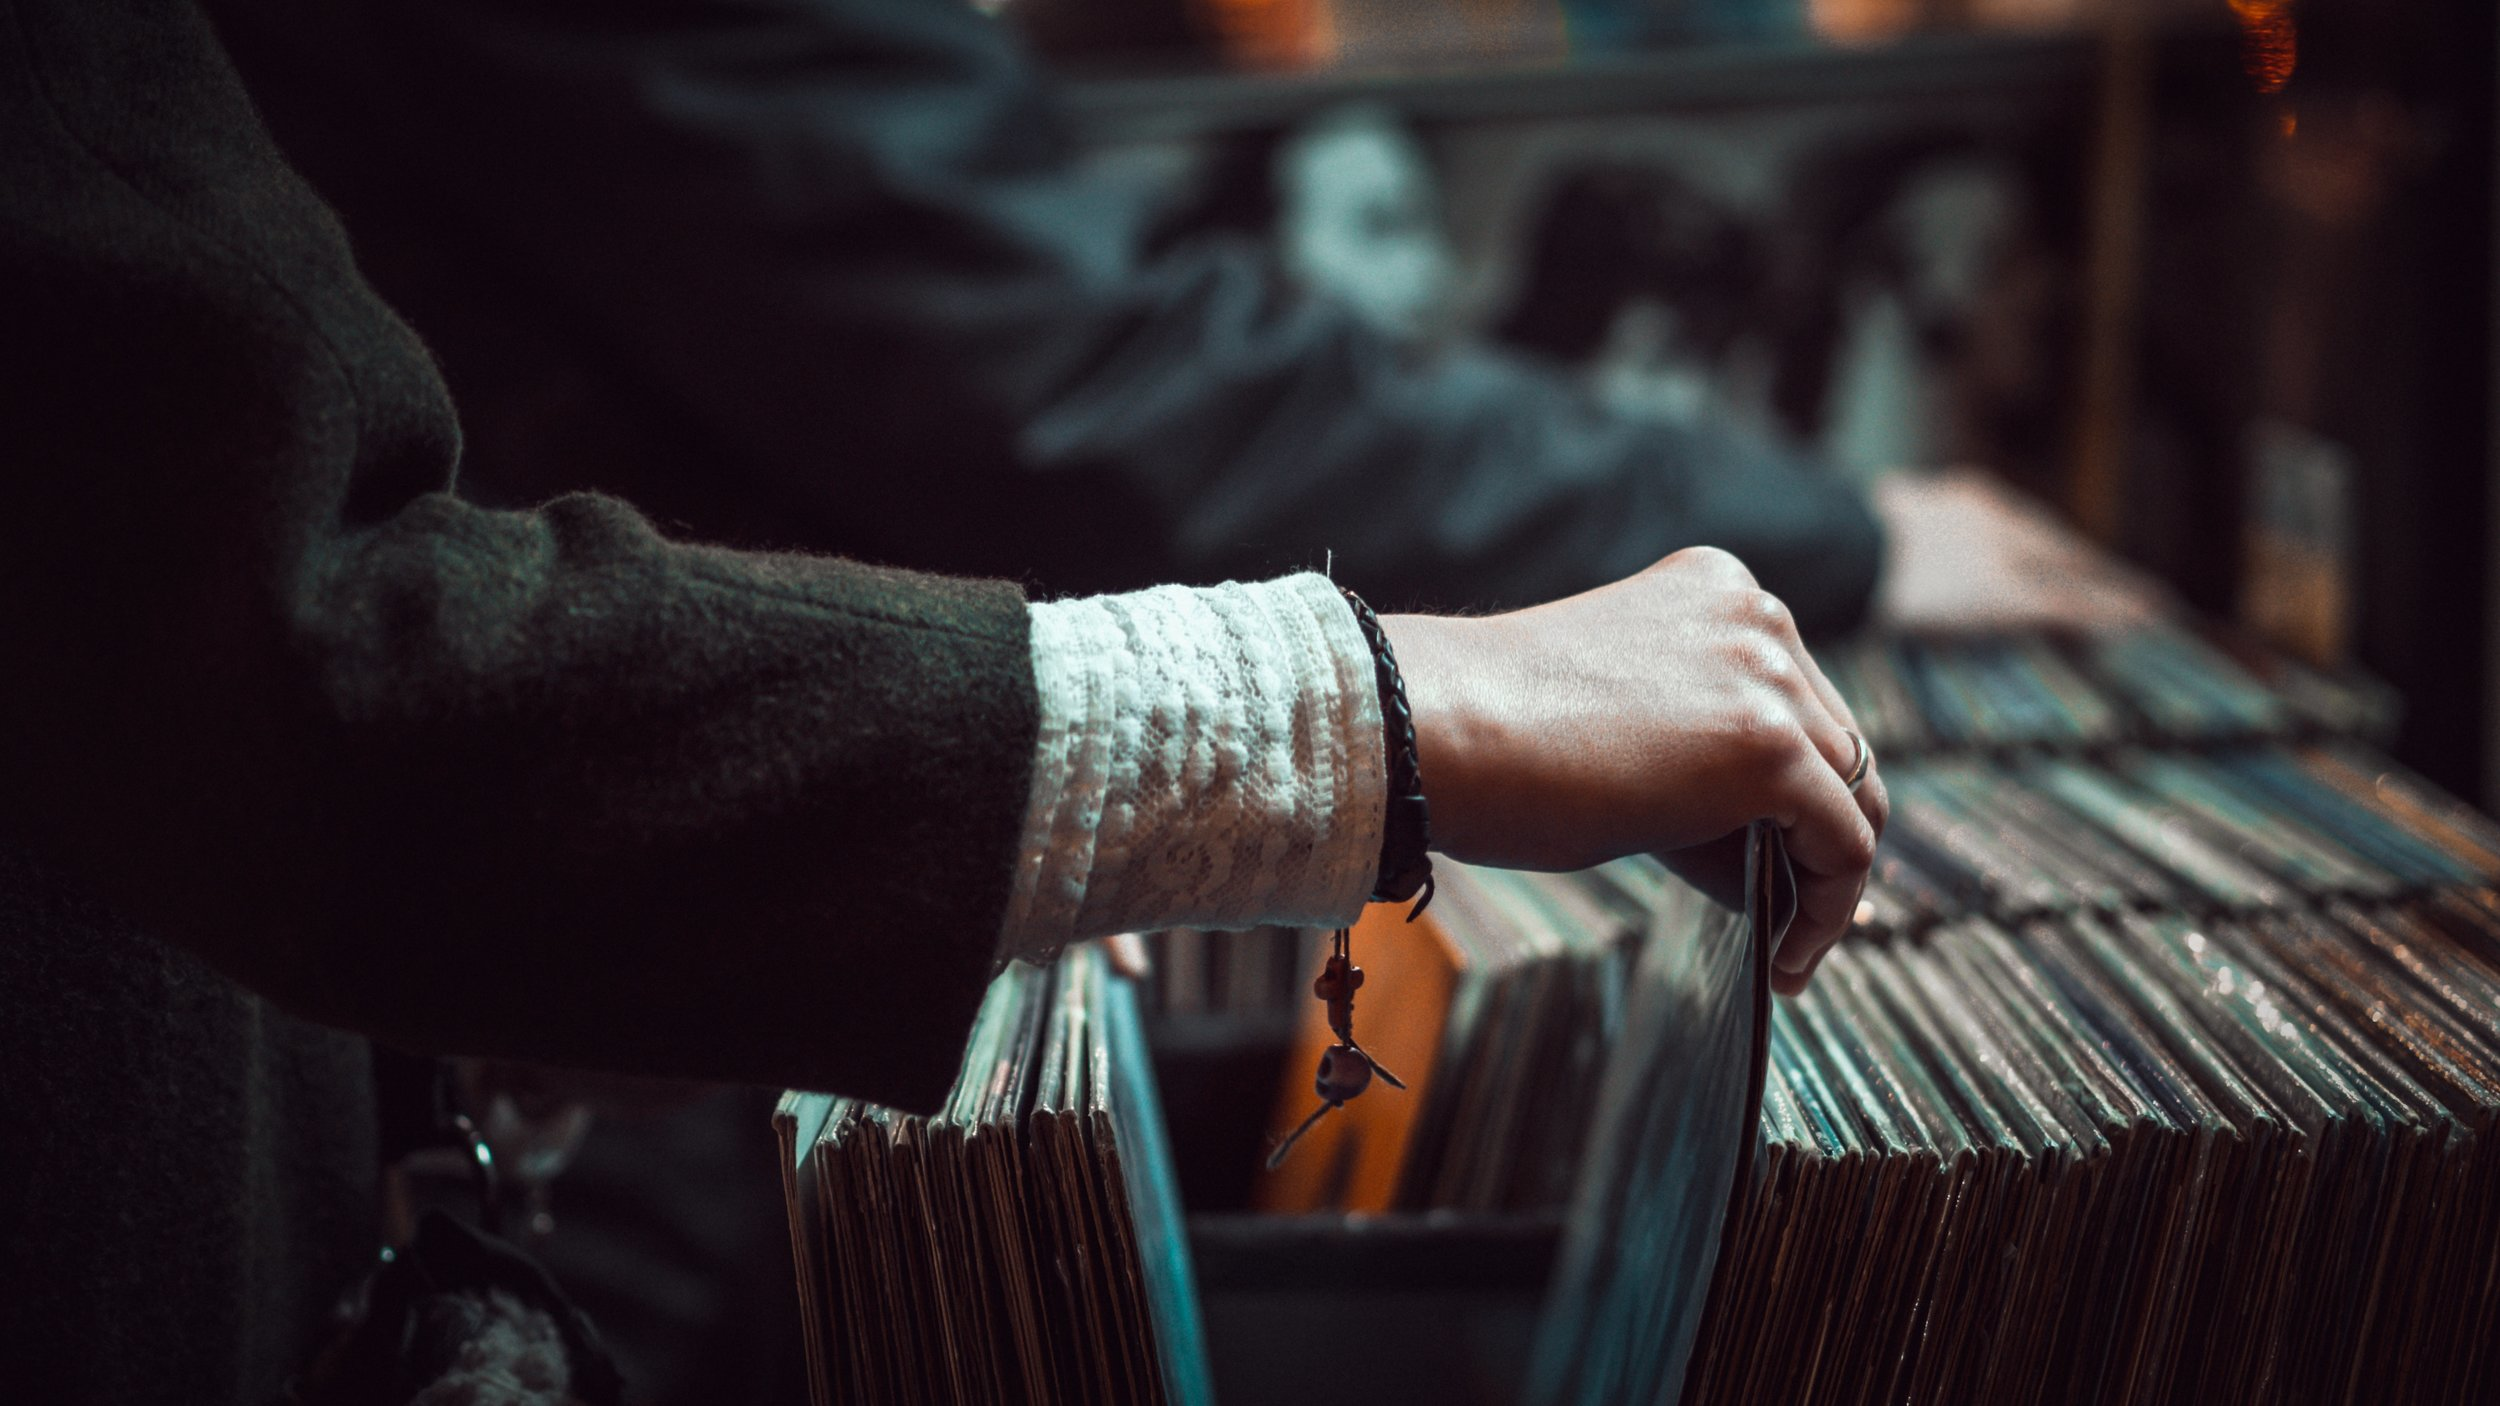 Person browsing LP records